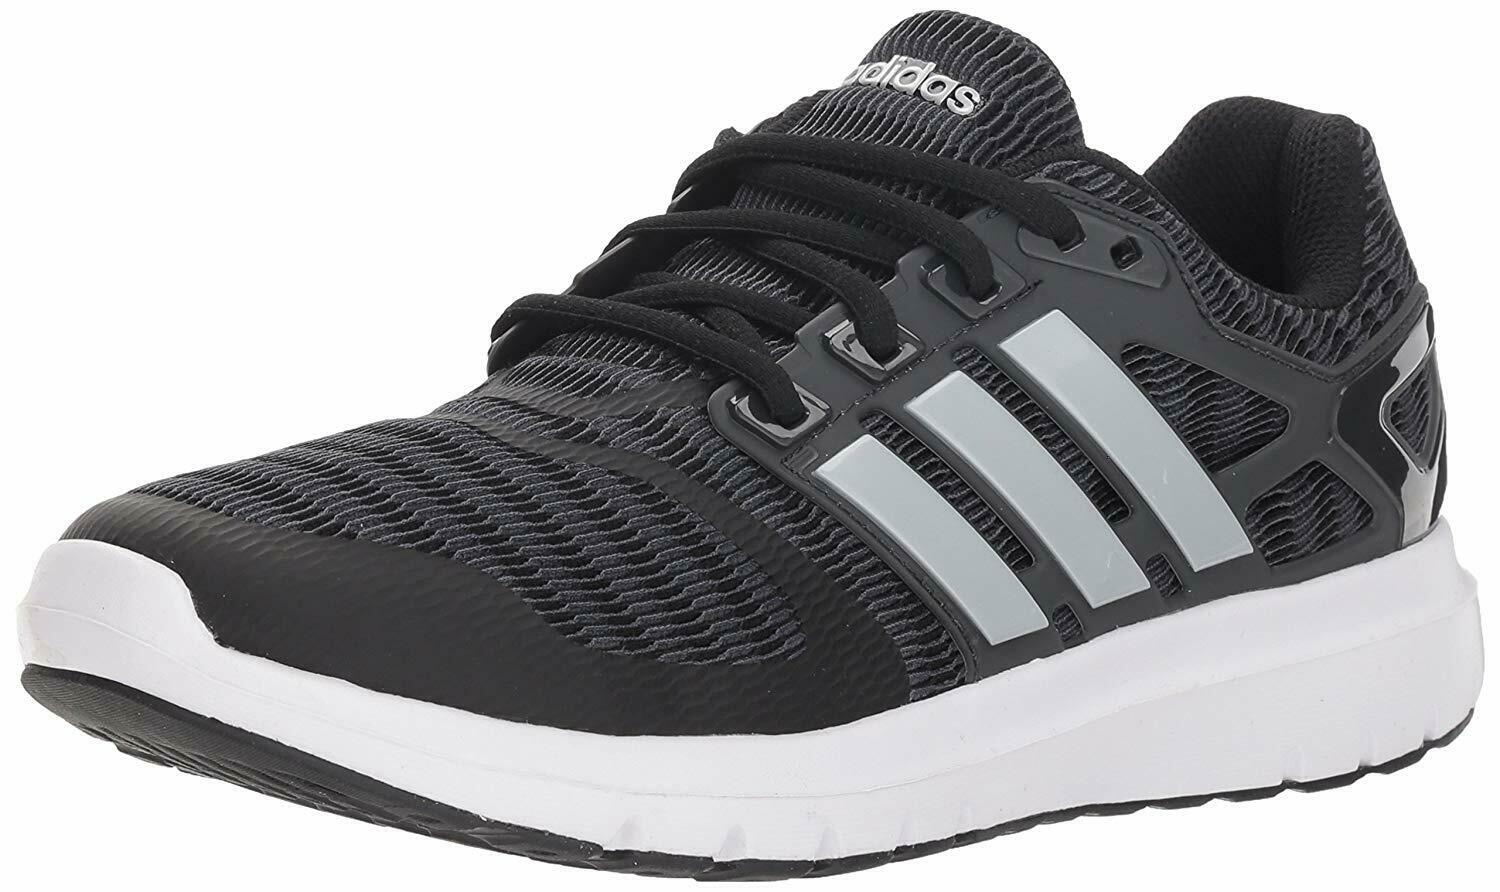 Adidas Women's Energy Cloud V Running shoes B44846 Size 6 New in the box